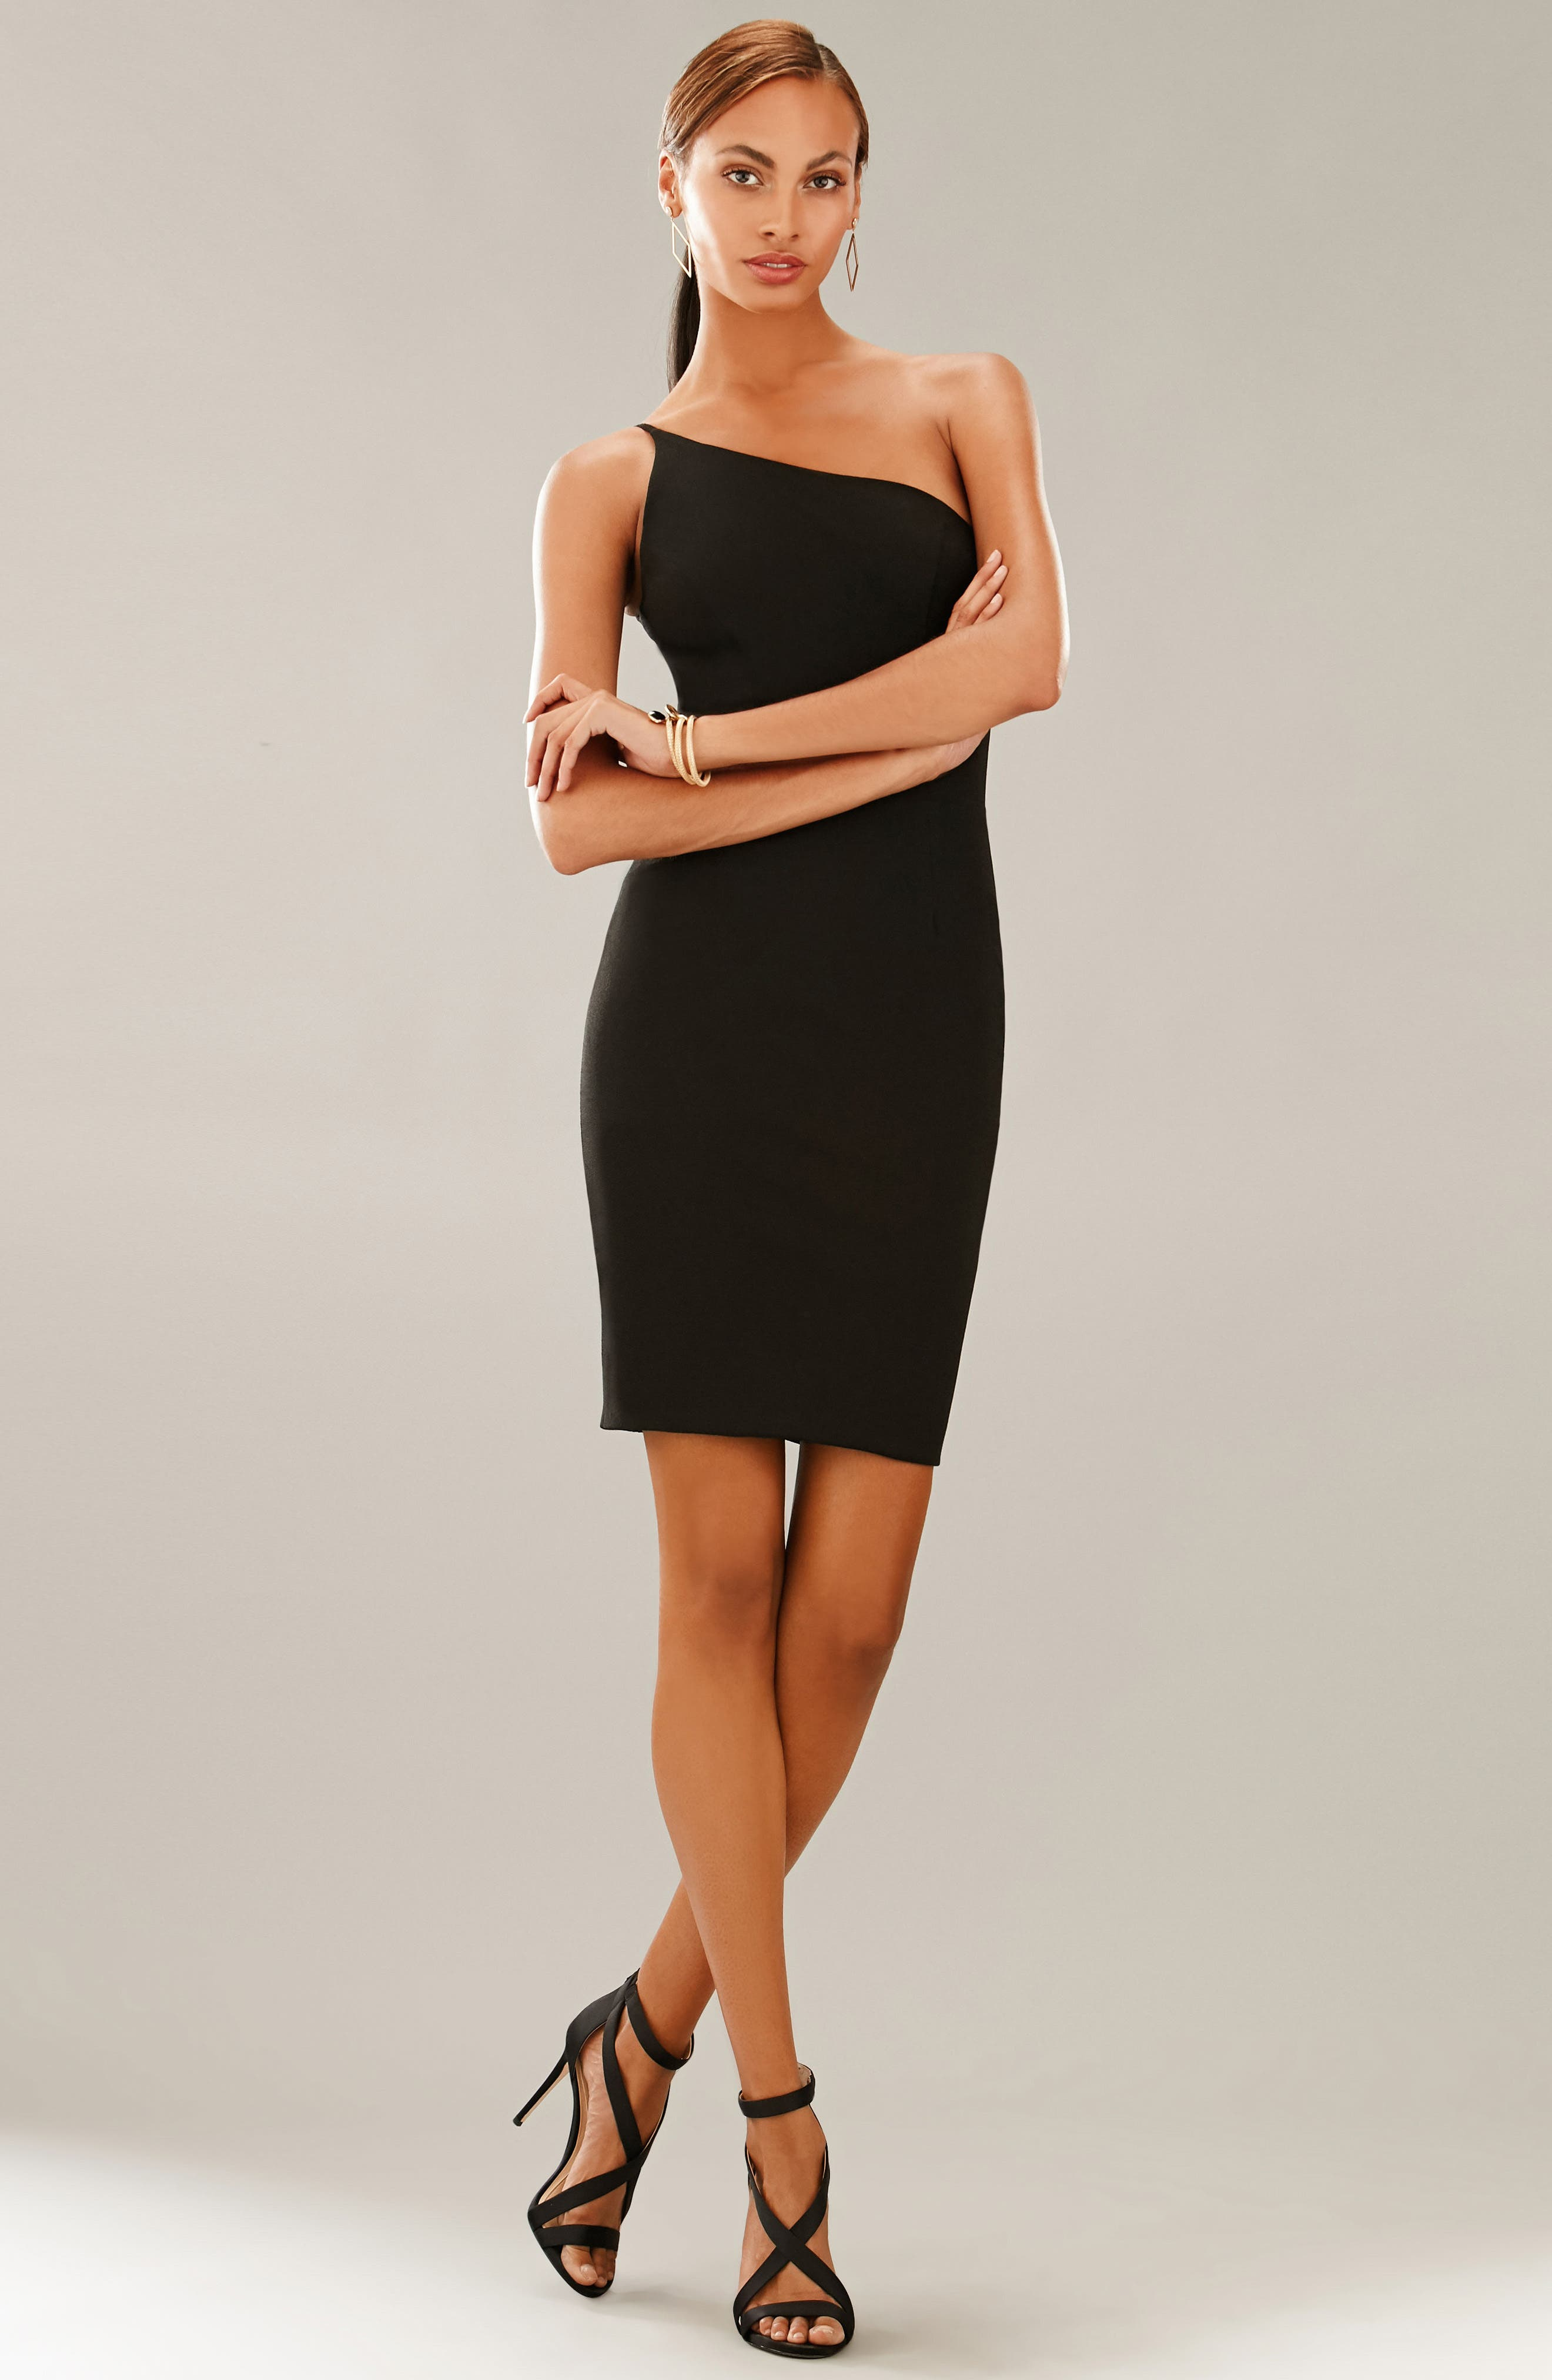 Jennifer One-Shoulder Body-Con Dress,                             Alternate thumbnail 4, color,                             001